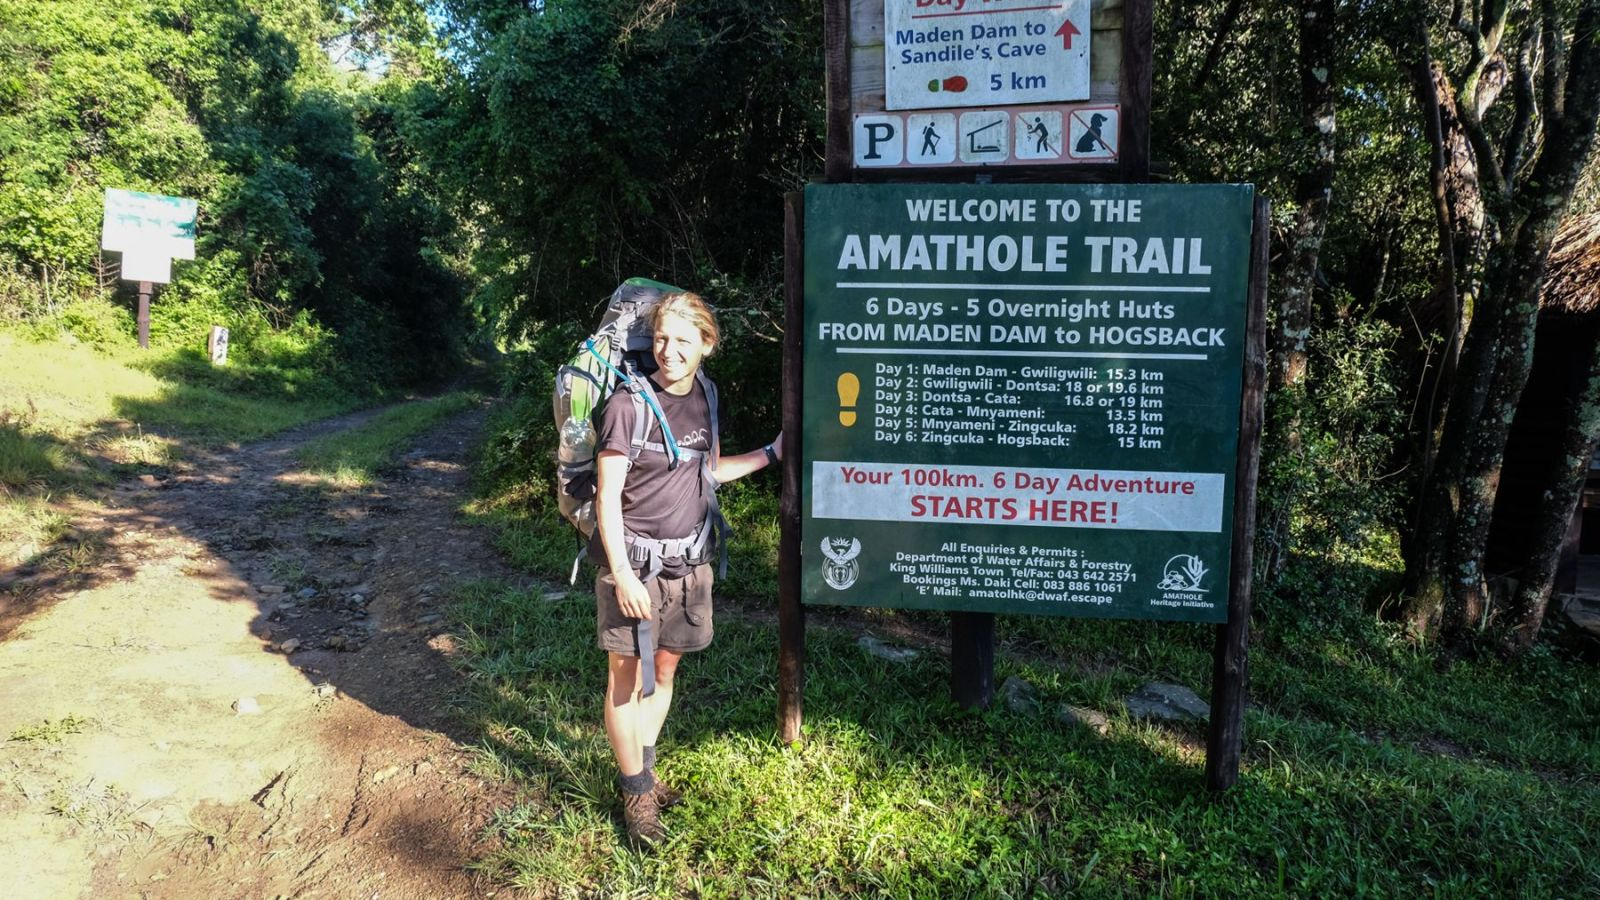 a photo of a hiker next to the sign post for distances on the amathole hiking trail.